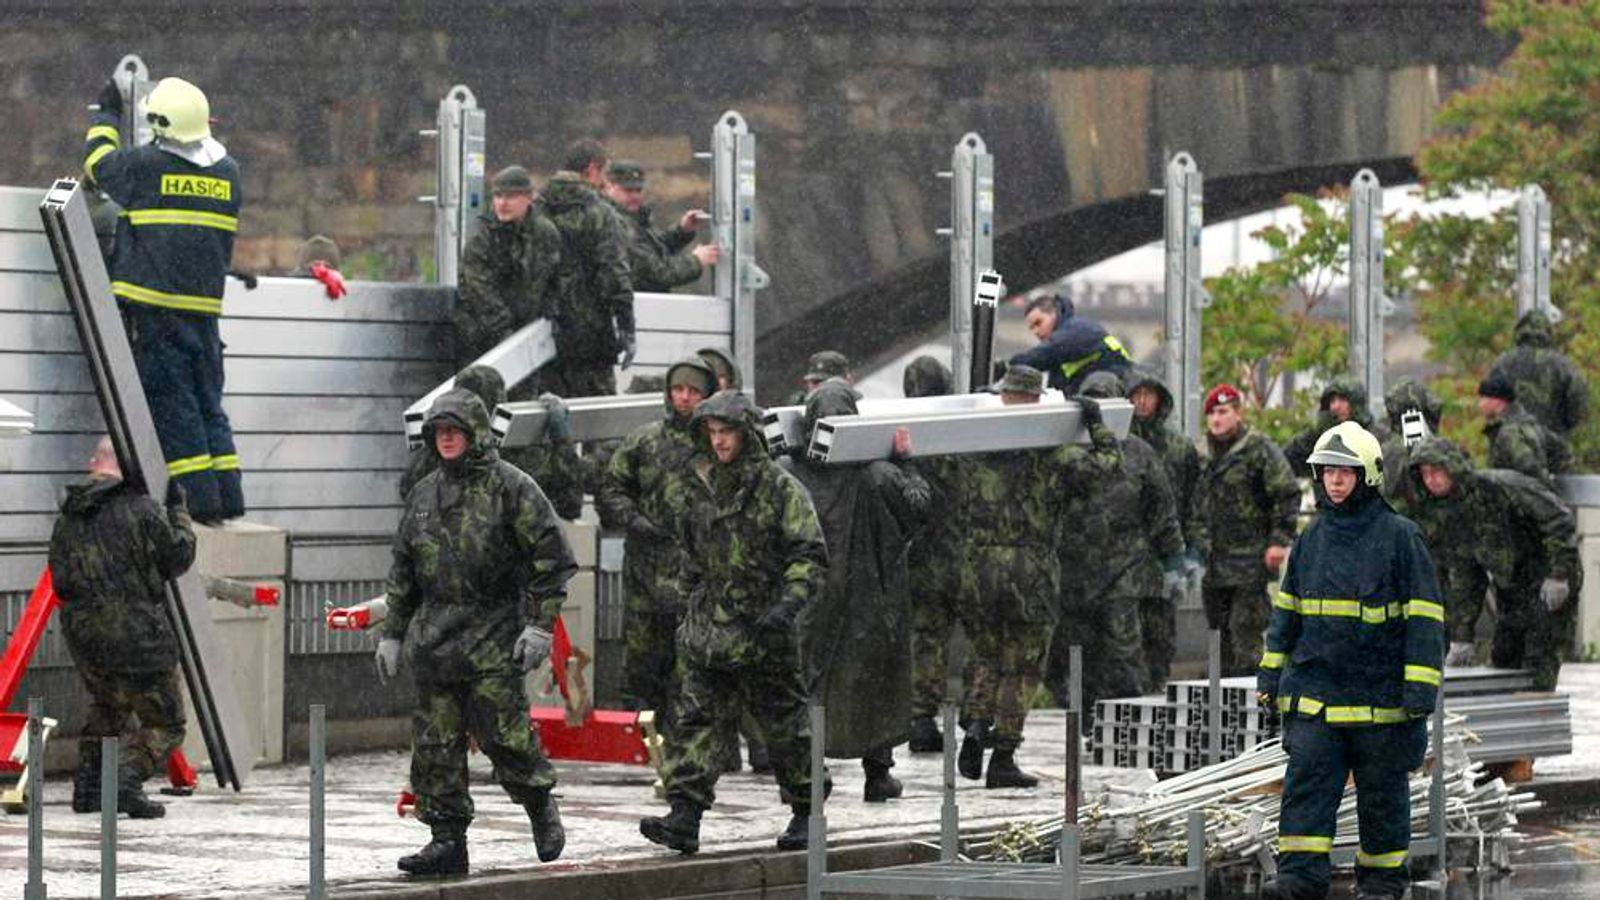 Czech soldiers erect metal barriers at a bank of Vltava river in Prague's Holesovice district.